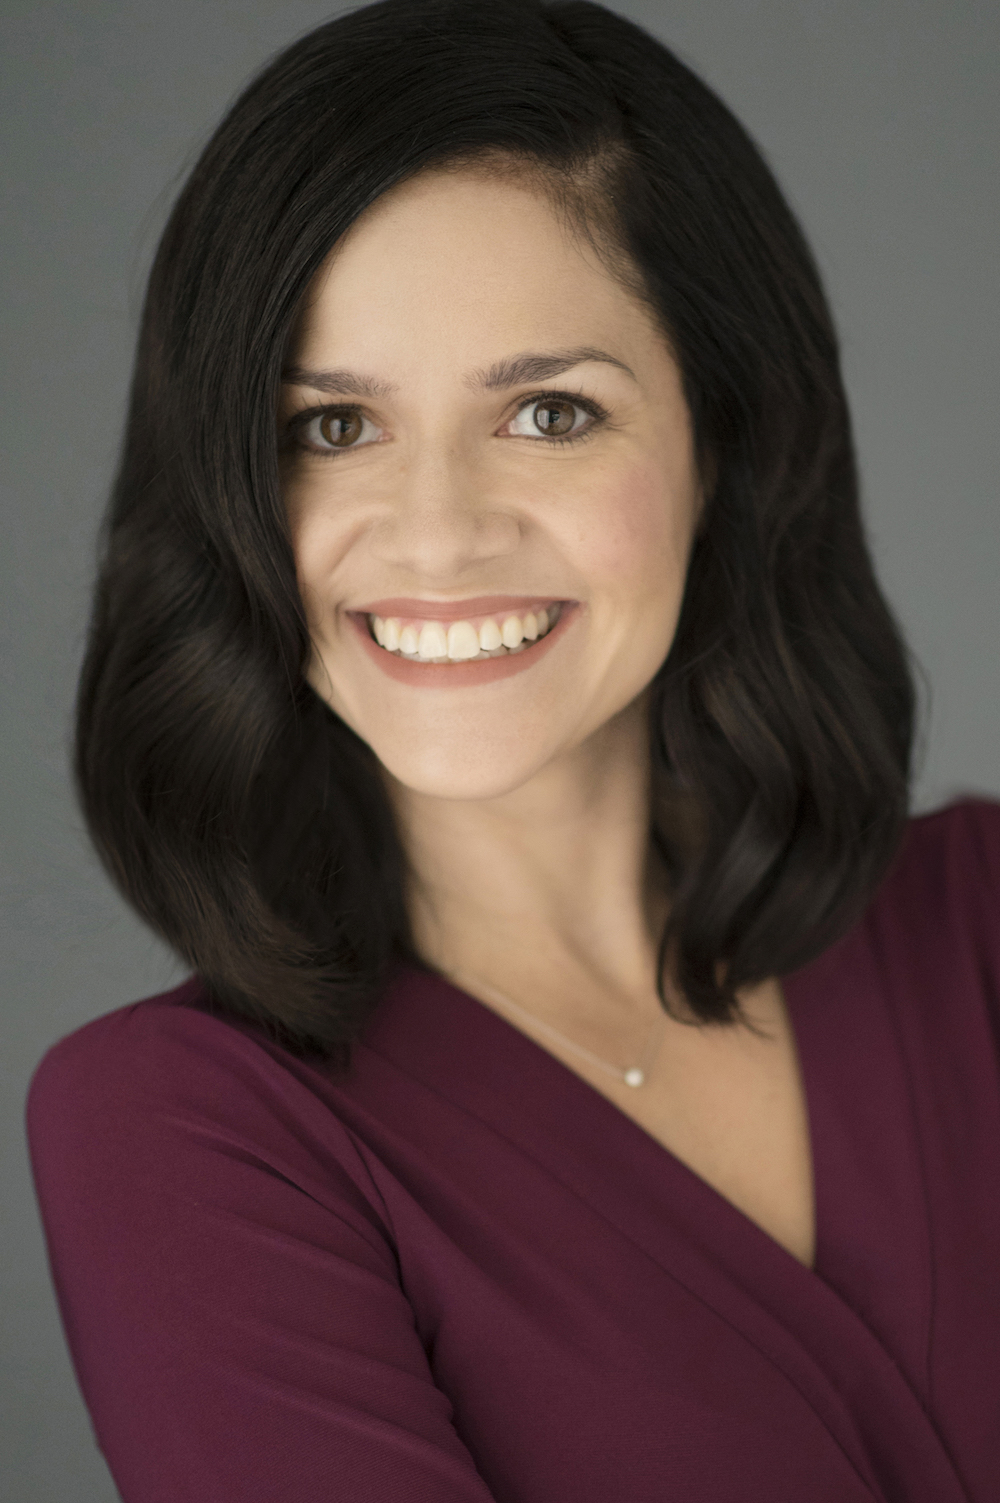 Headshot of Vickie Loyola